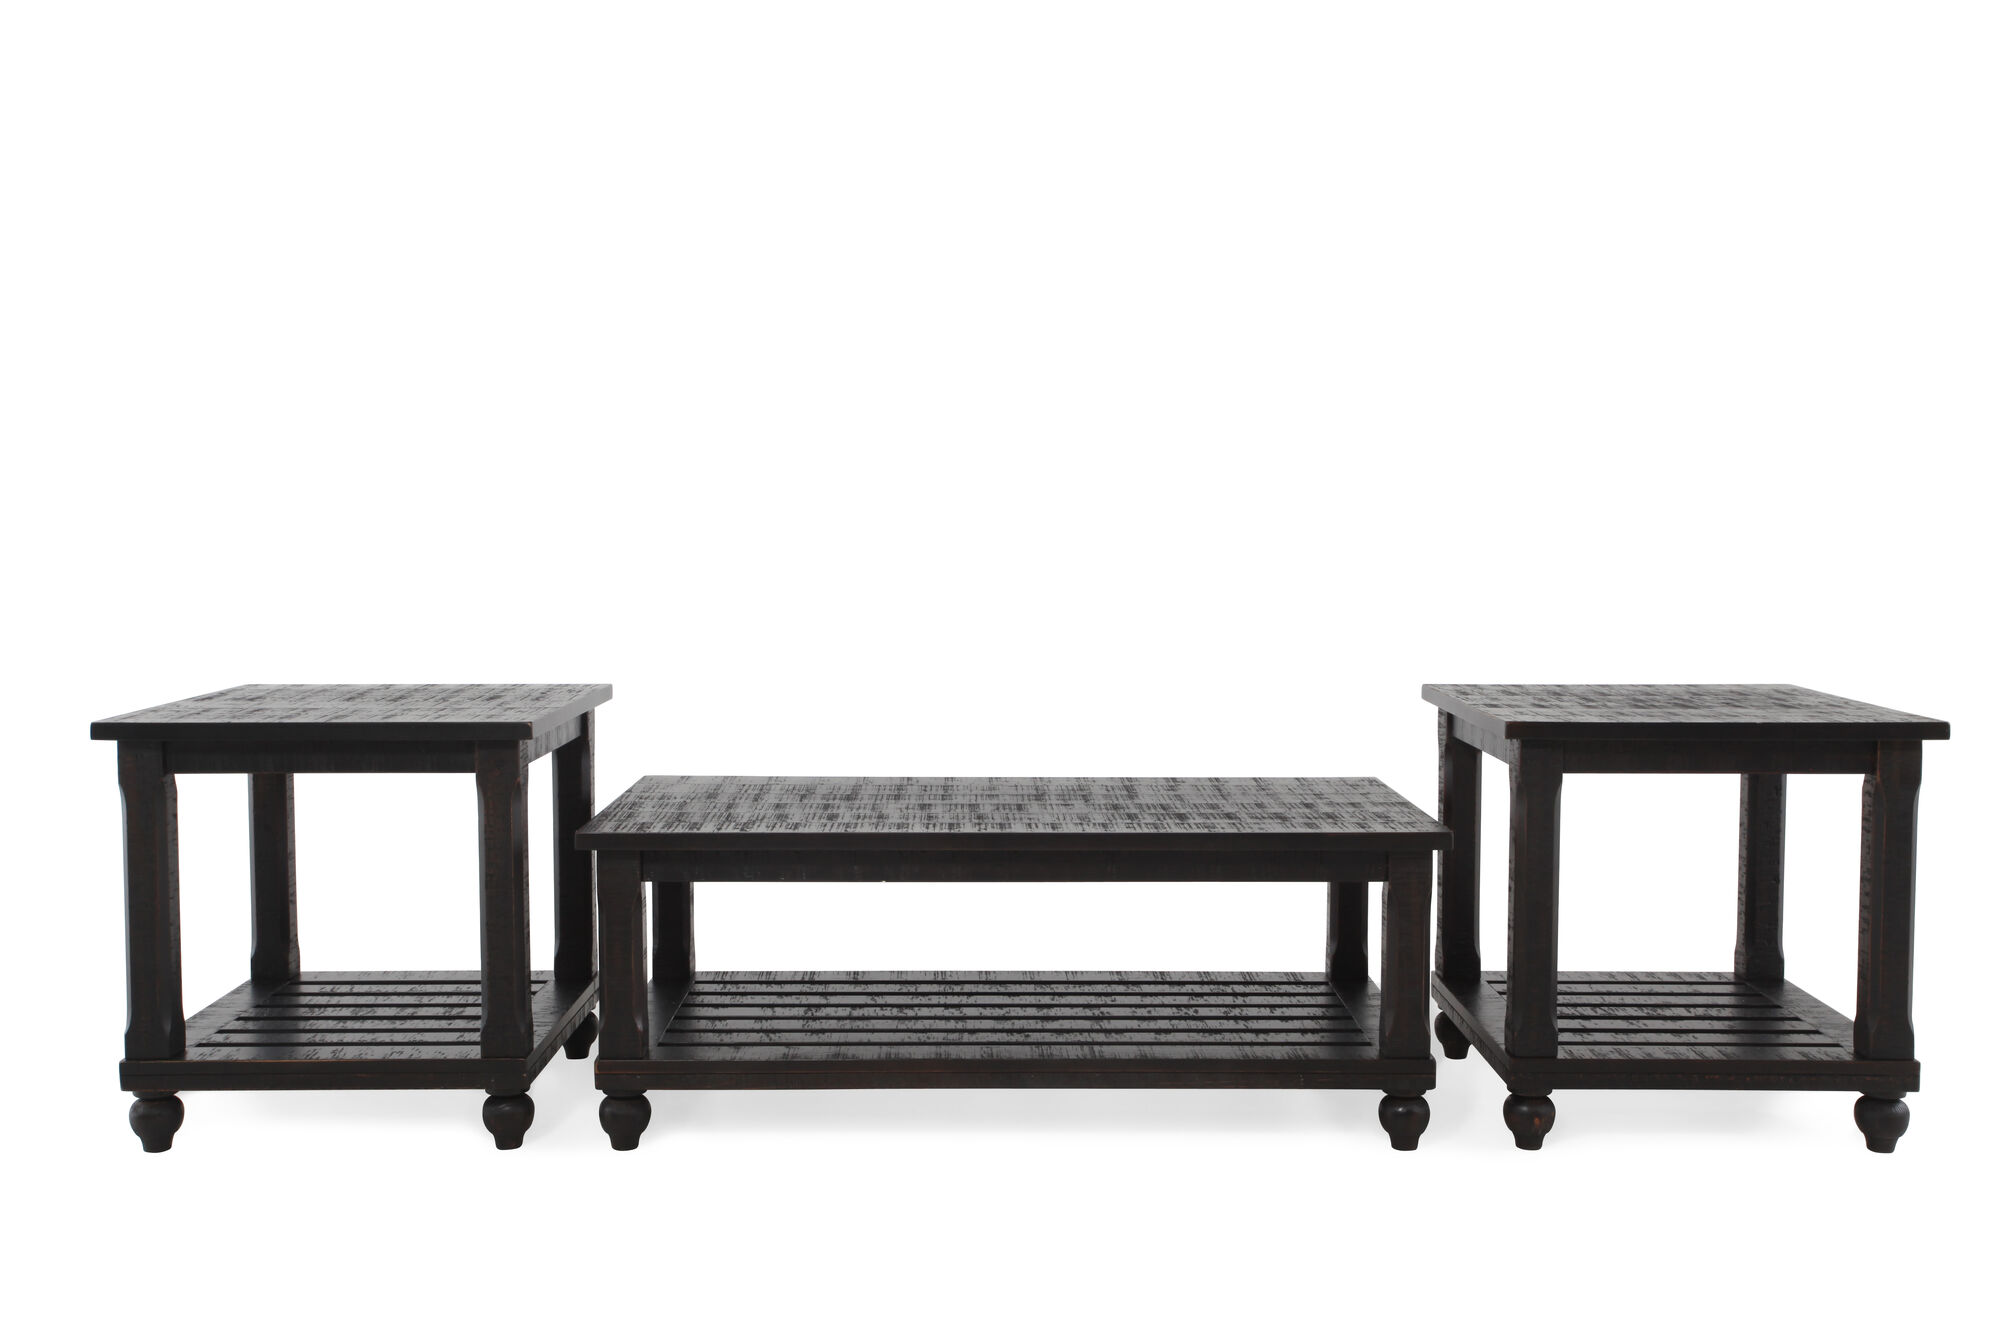 Three Piece Contemporary Tail Table Set In Black Mathis Brothers Furniture